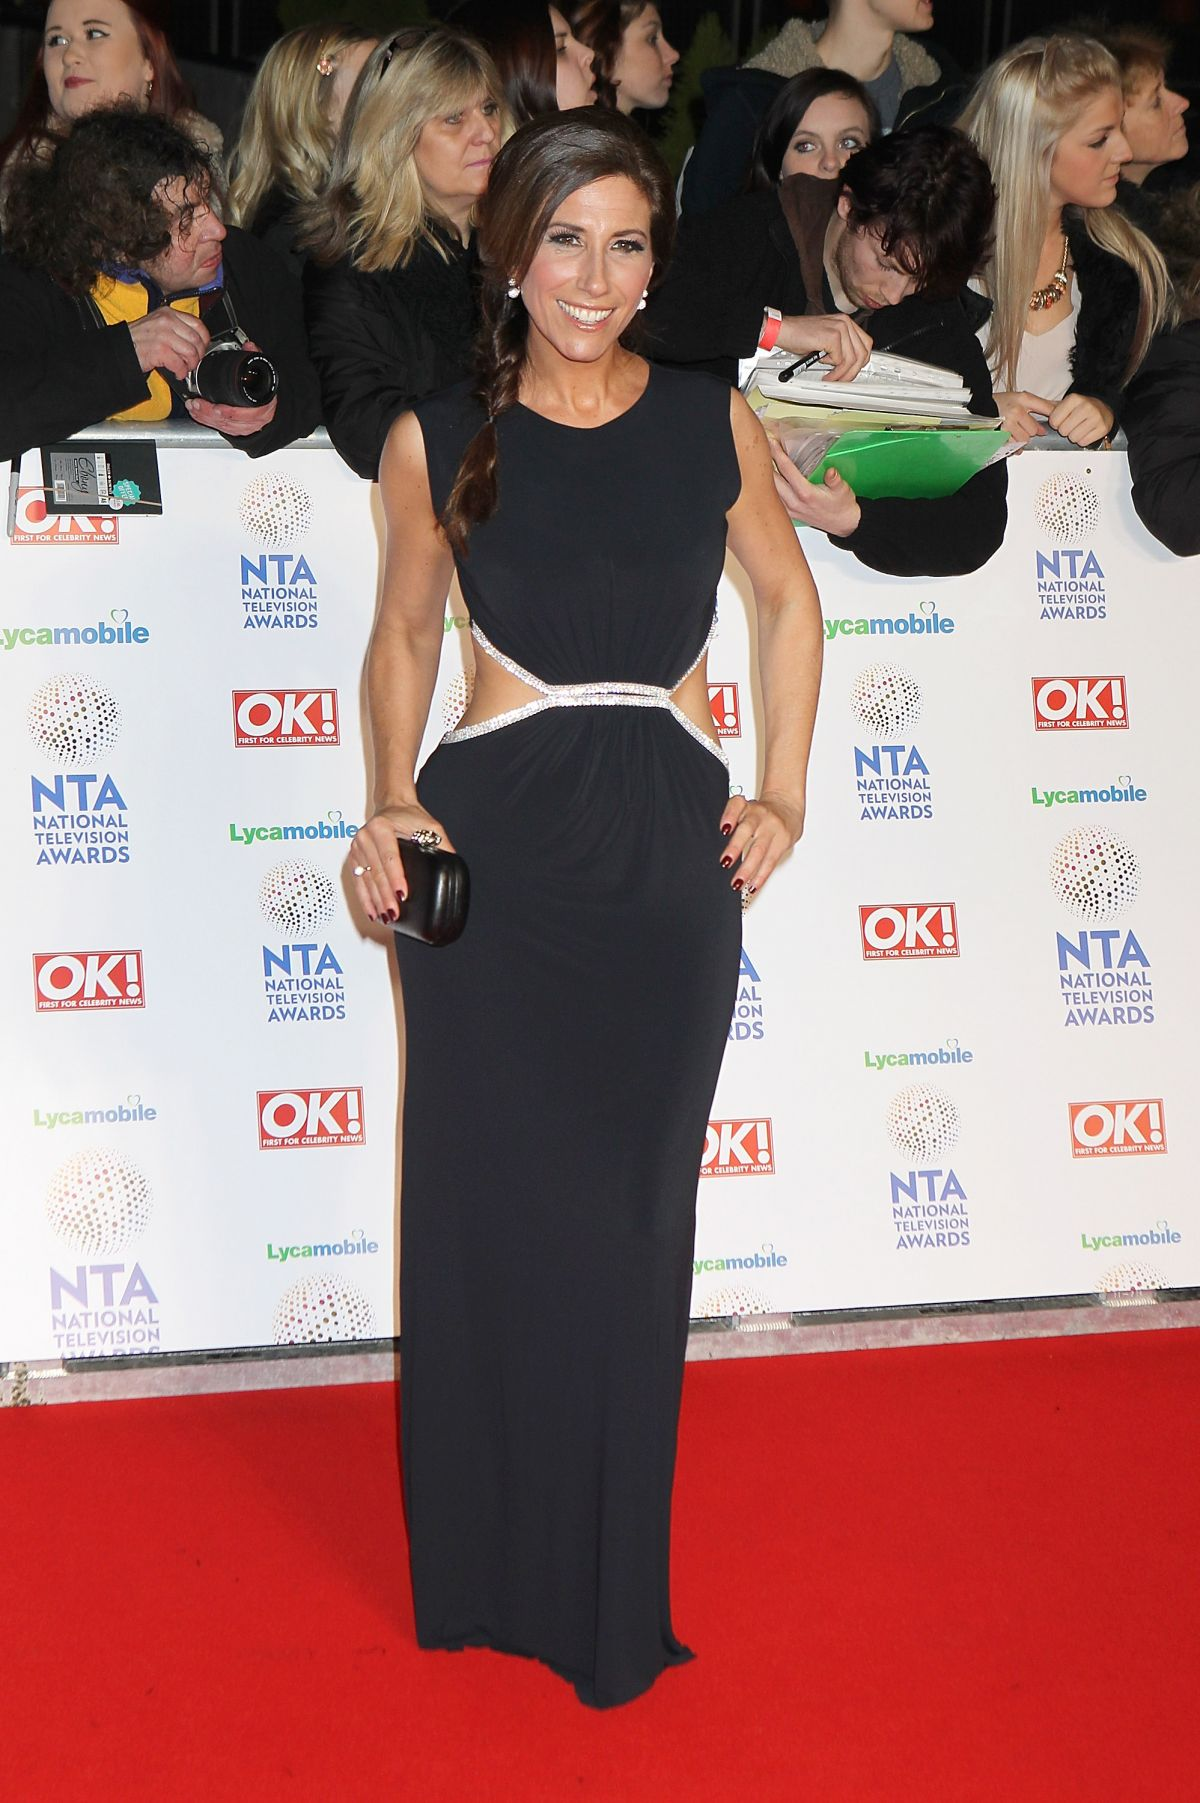 GAYNOR FAYE at 2014 National Television Awards in London